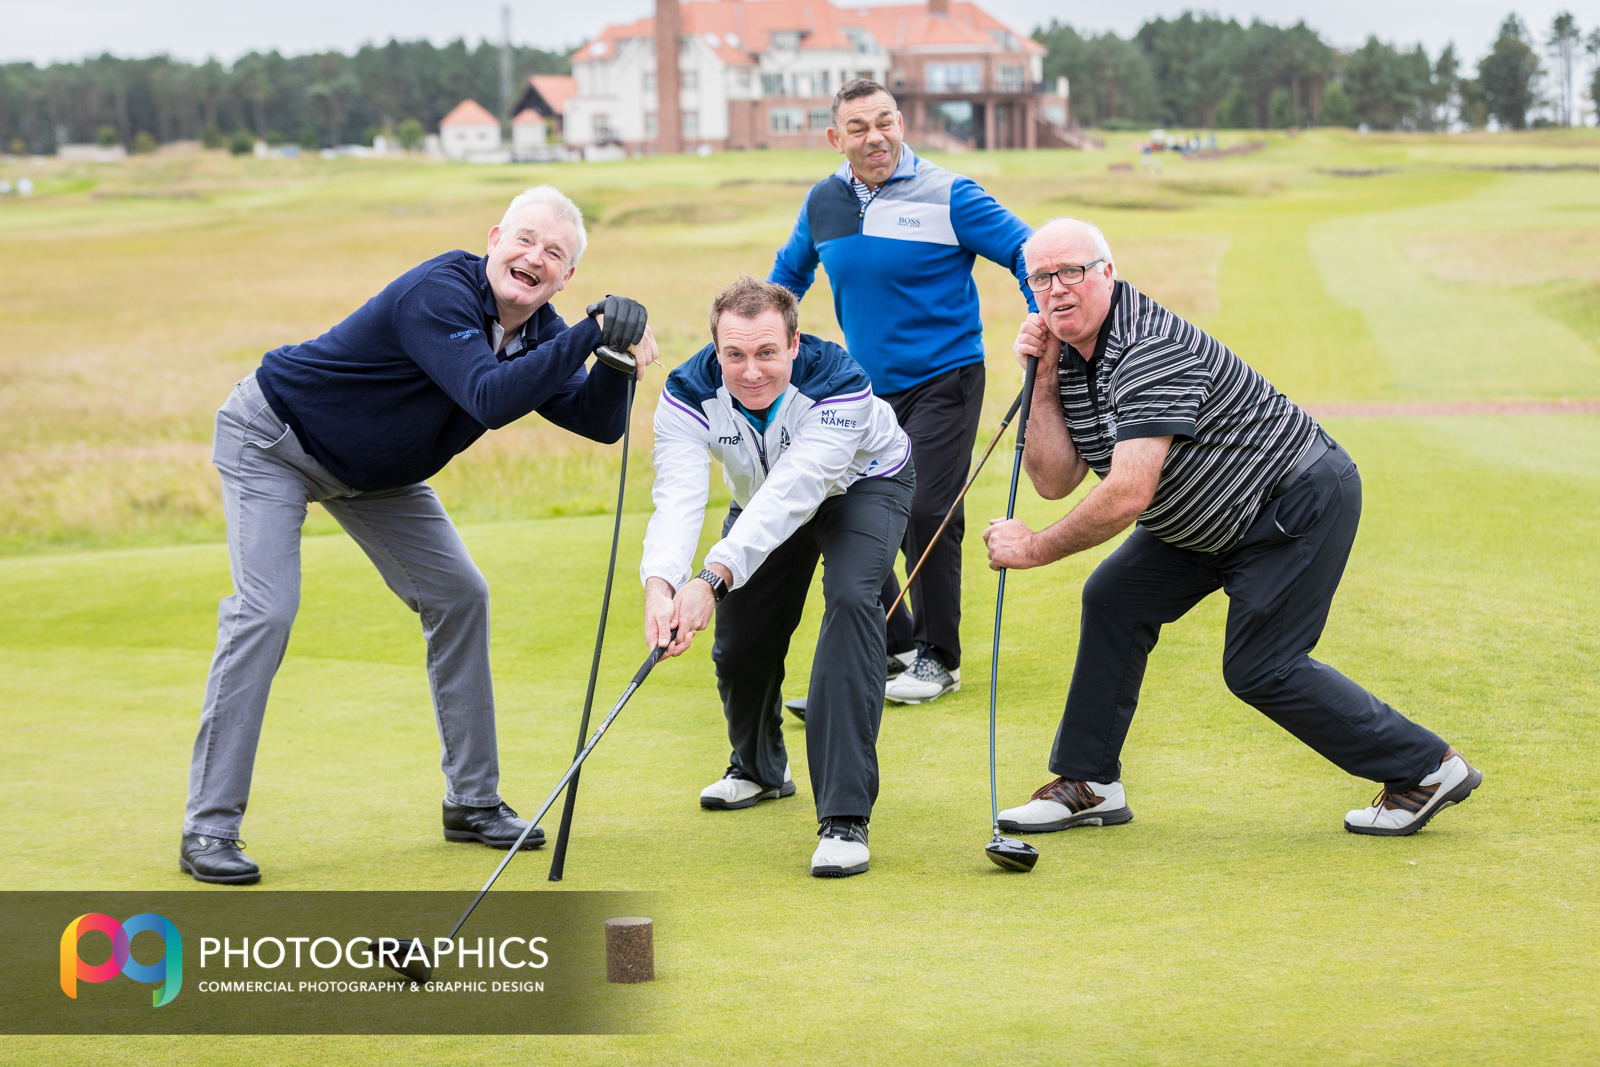 charity-golf-pr-event-photography-glasgow-edinburgh-scotland-16.jpg